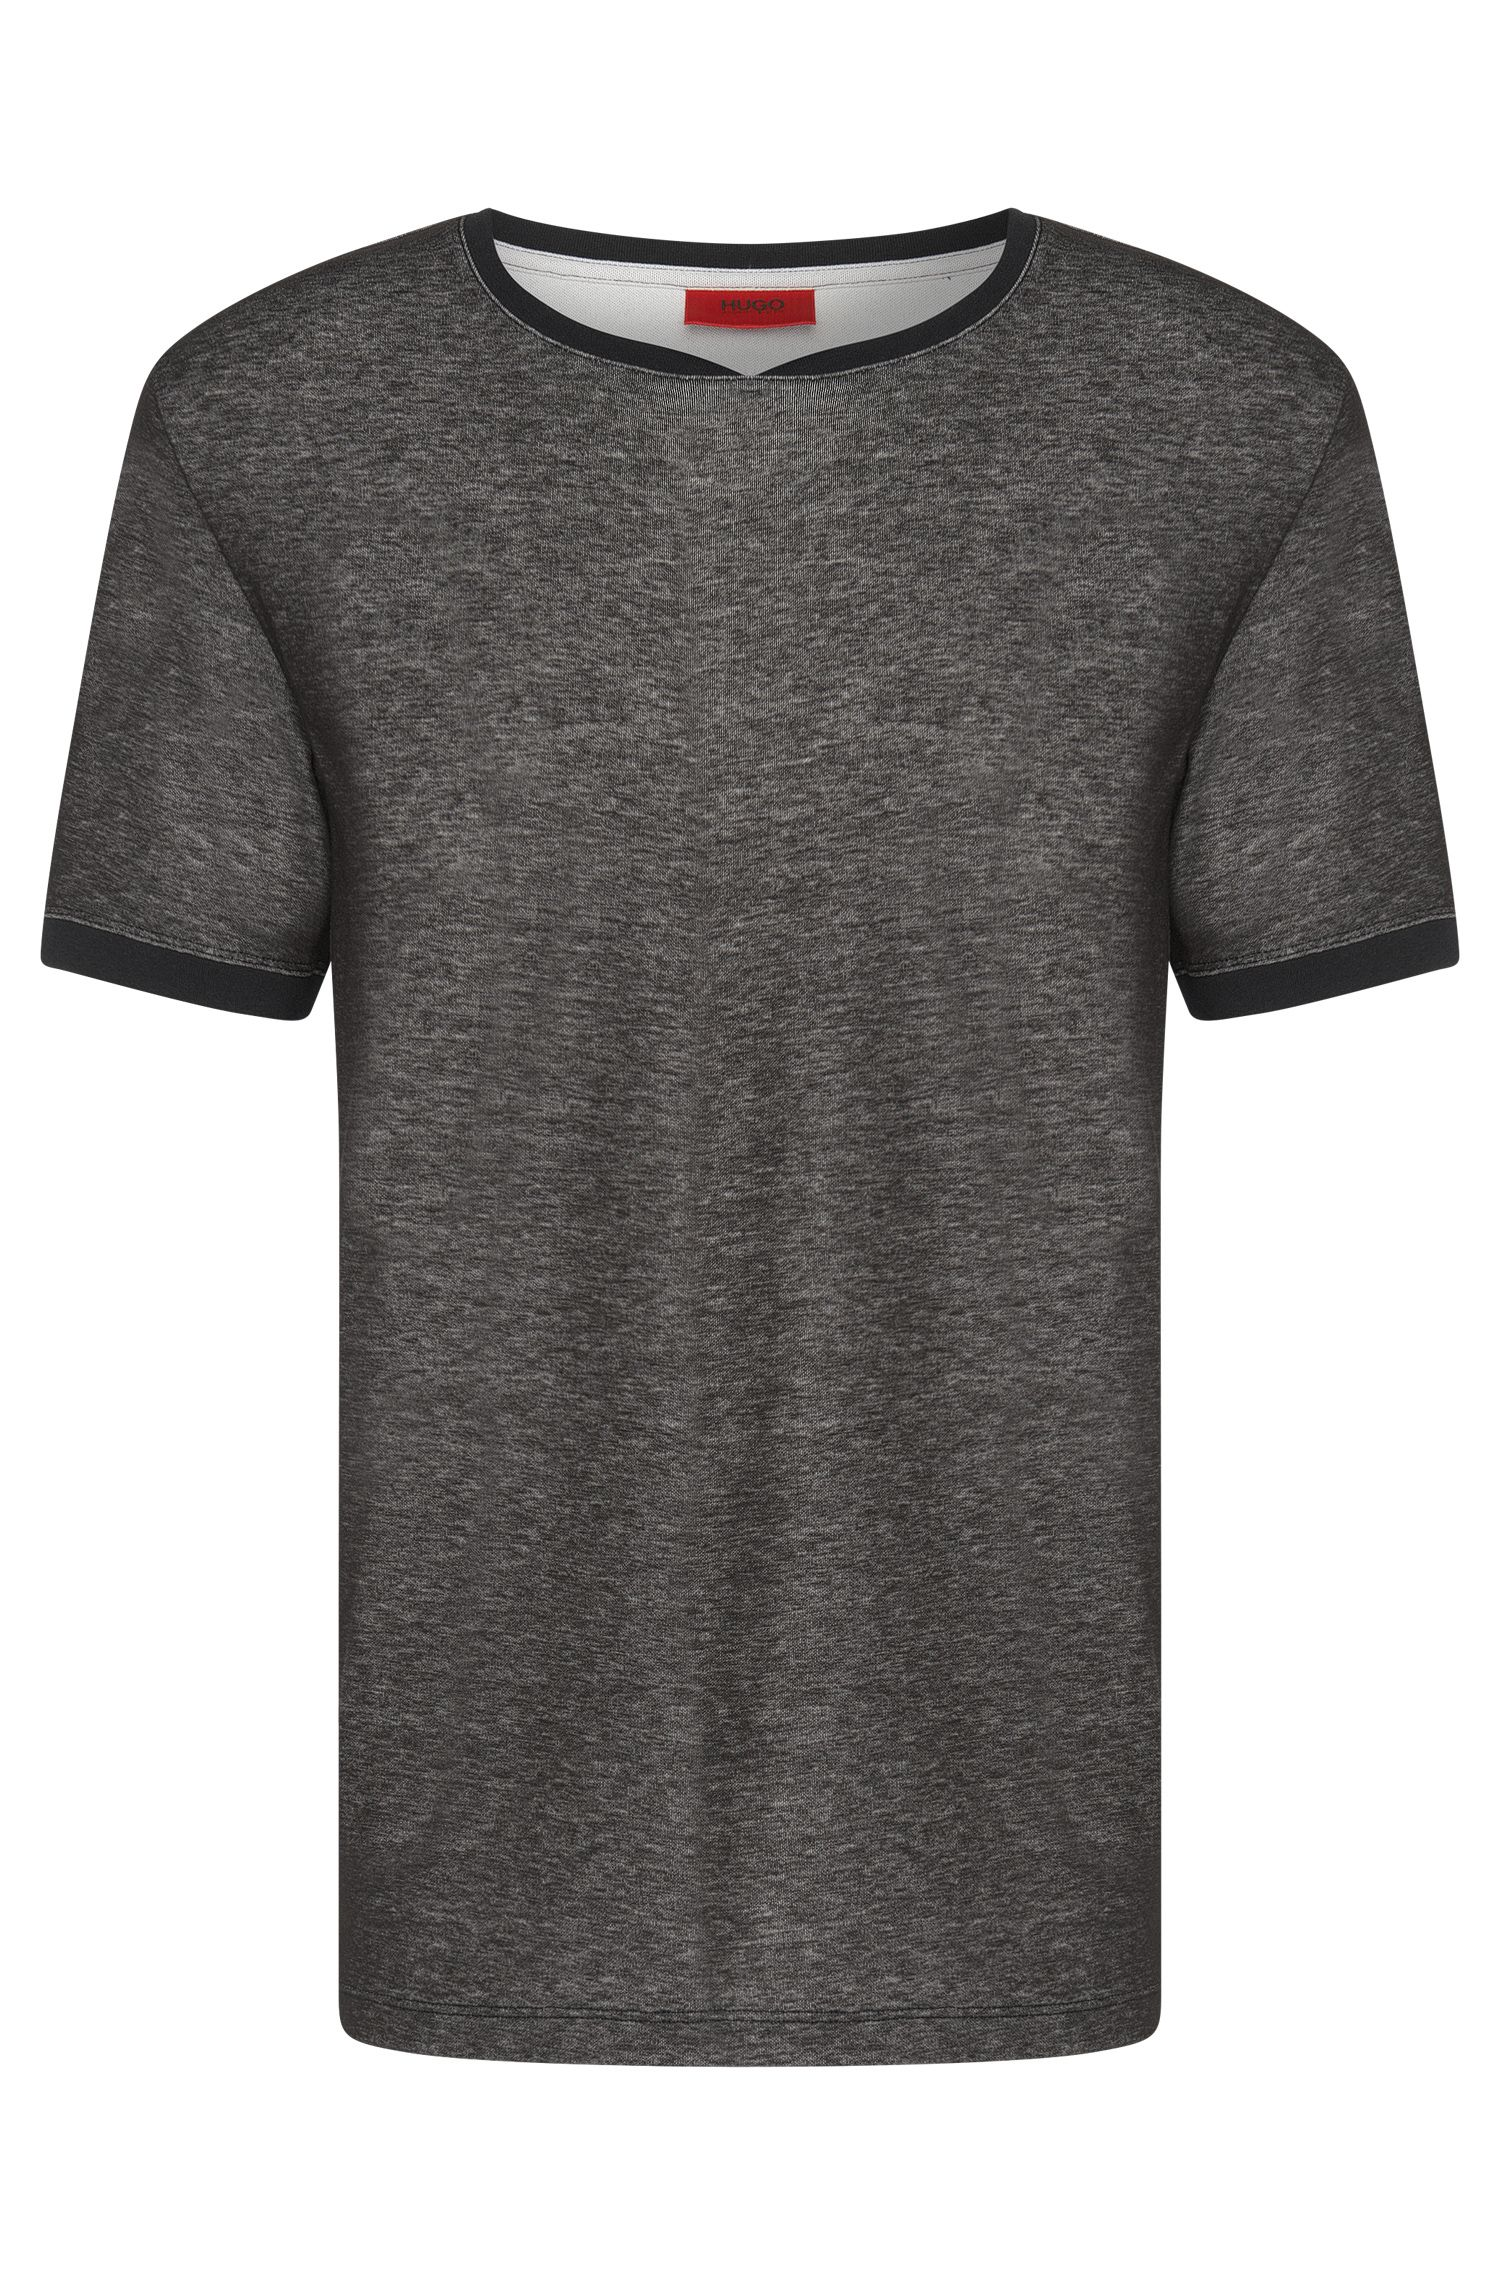 Mottled loose-fit t-shirt in cotton blend: 'Dircus'